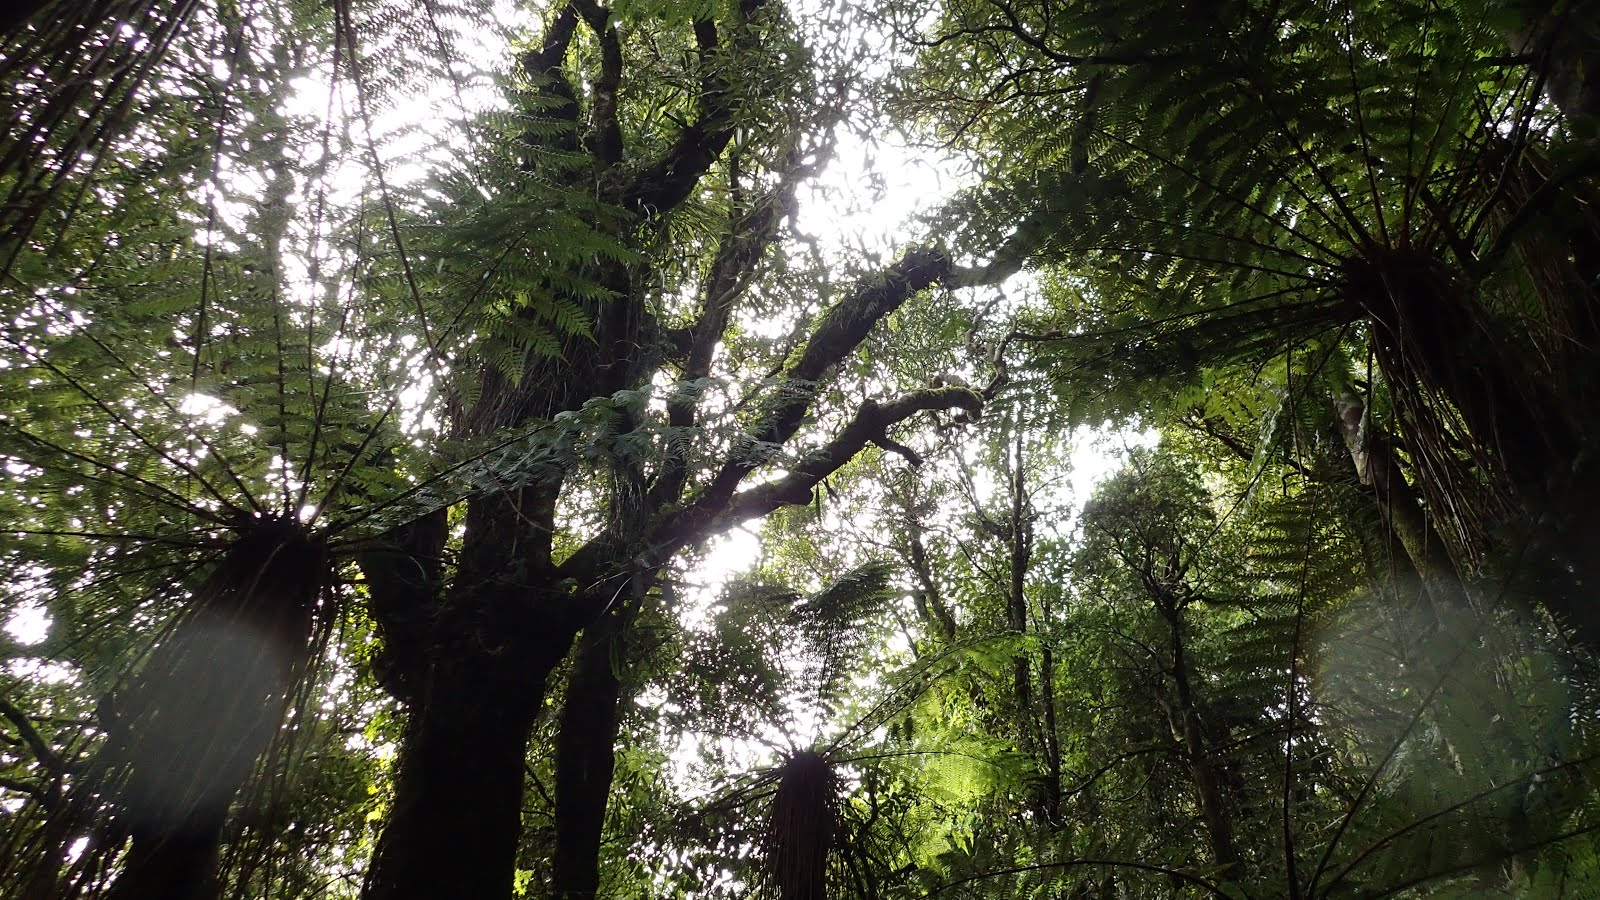 Pukaka walk: Ferns and trees and raindrops